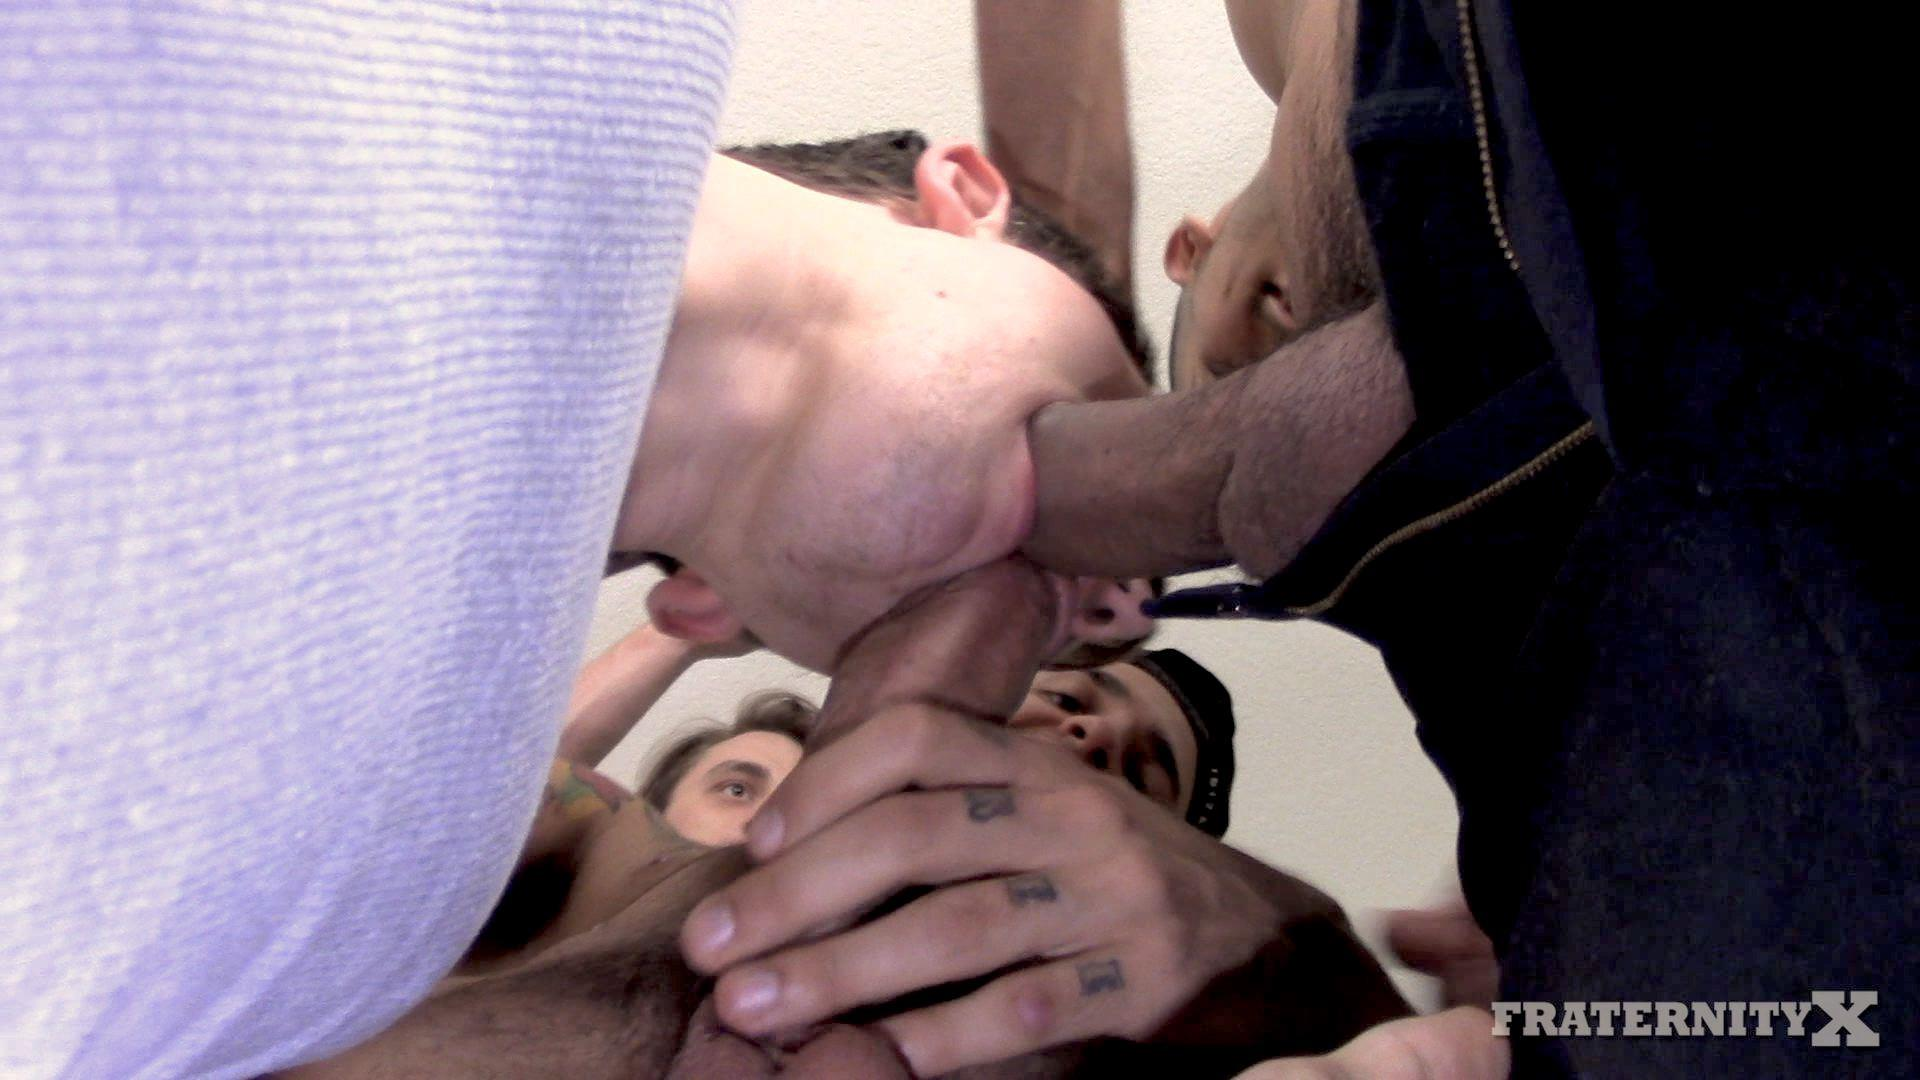 Fraternity-X-Naked-Frat-Guys-Gay-Bareback-Sex-Video-03 Drunk Naked Frat Boy Takes Five Raw Cocks Up The Ass